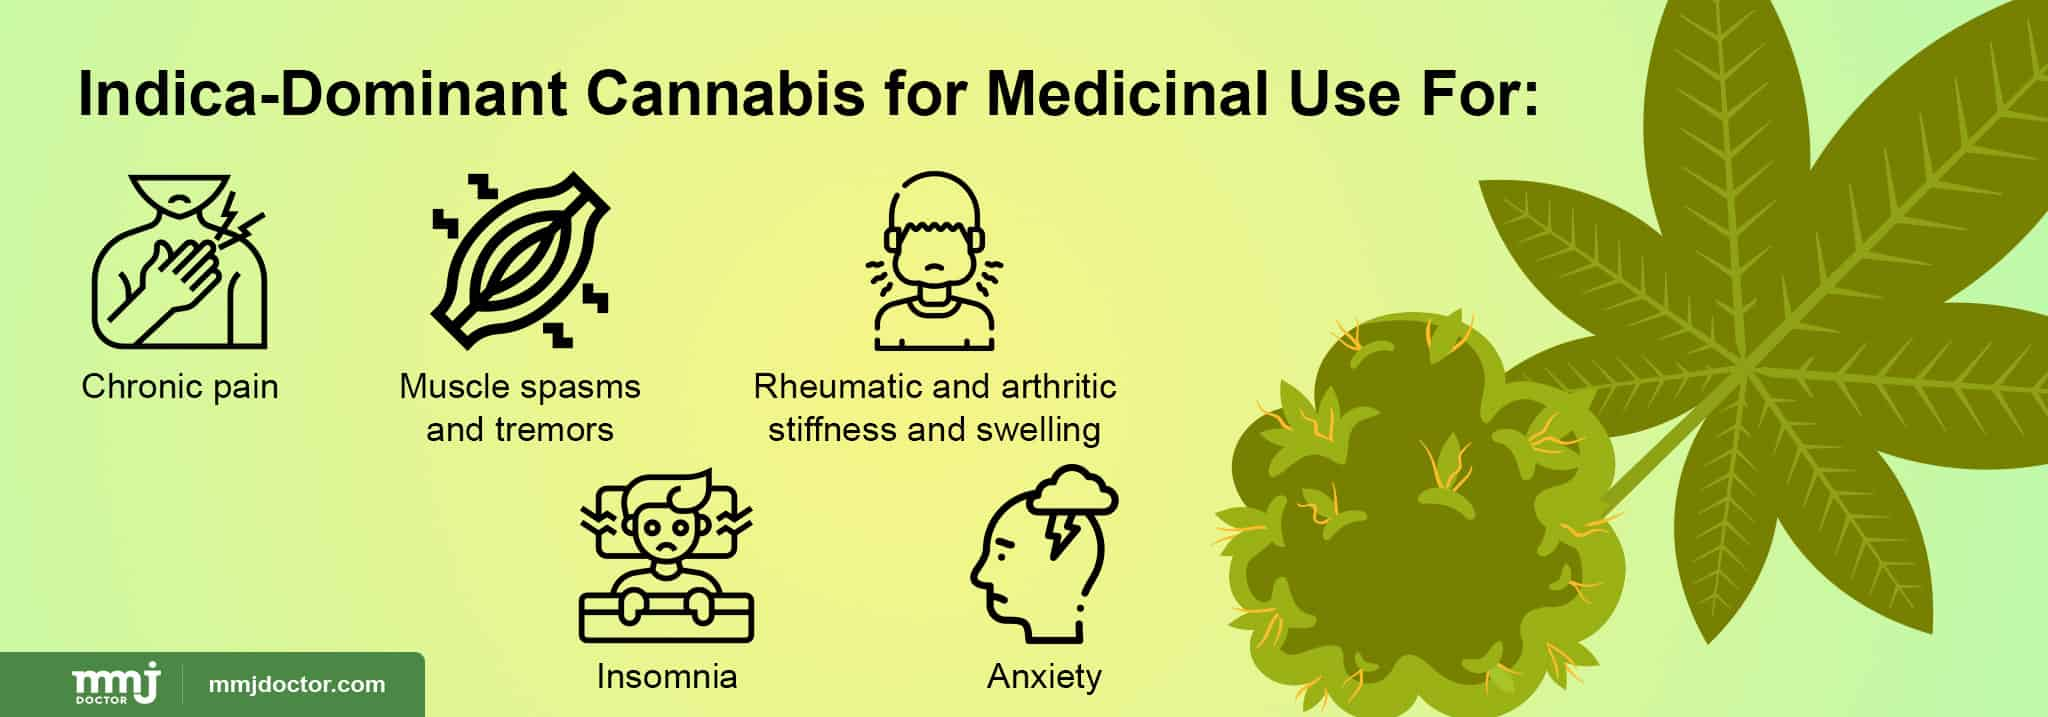 Indica dominant use